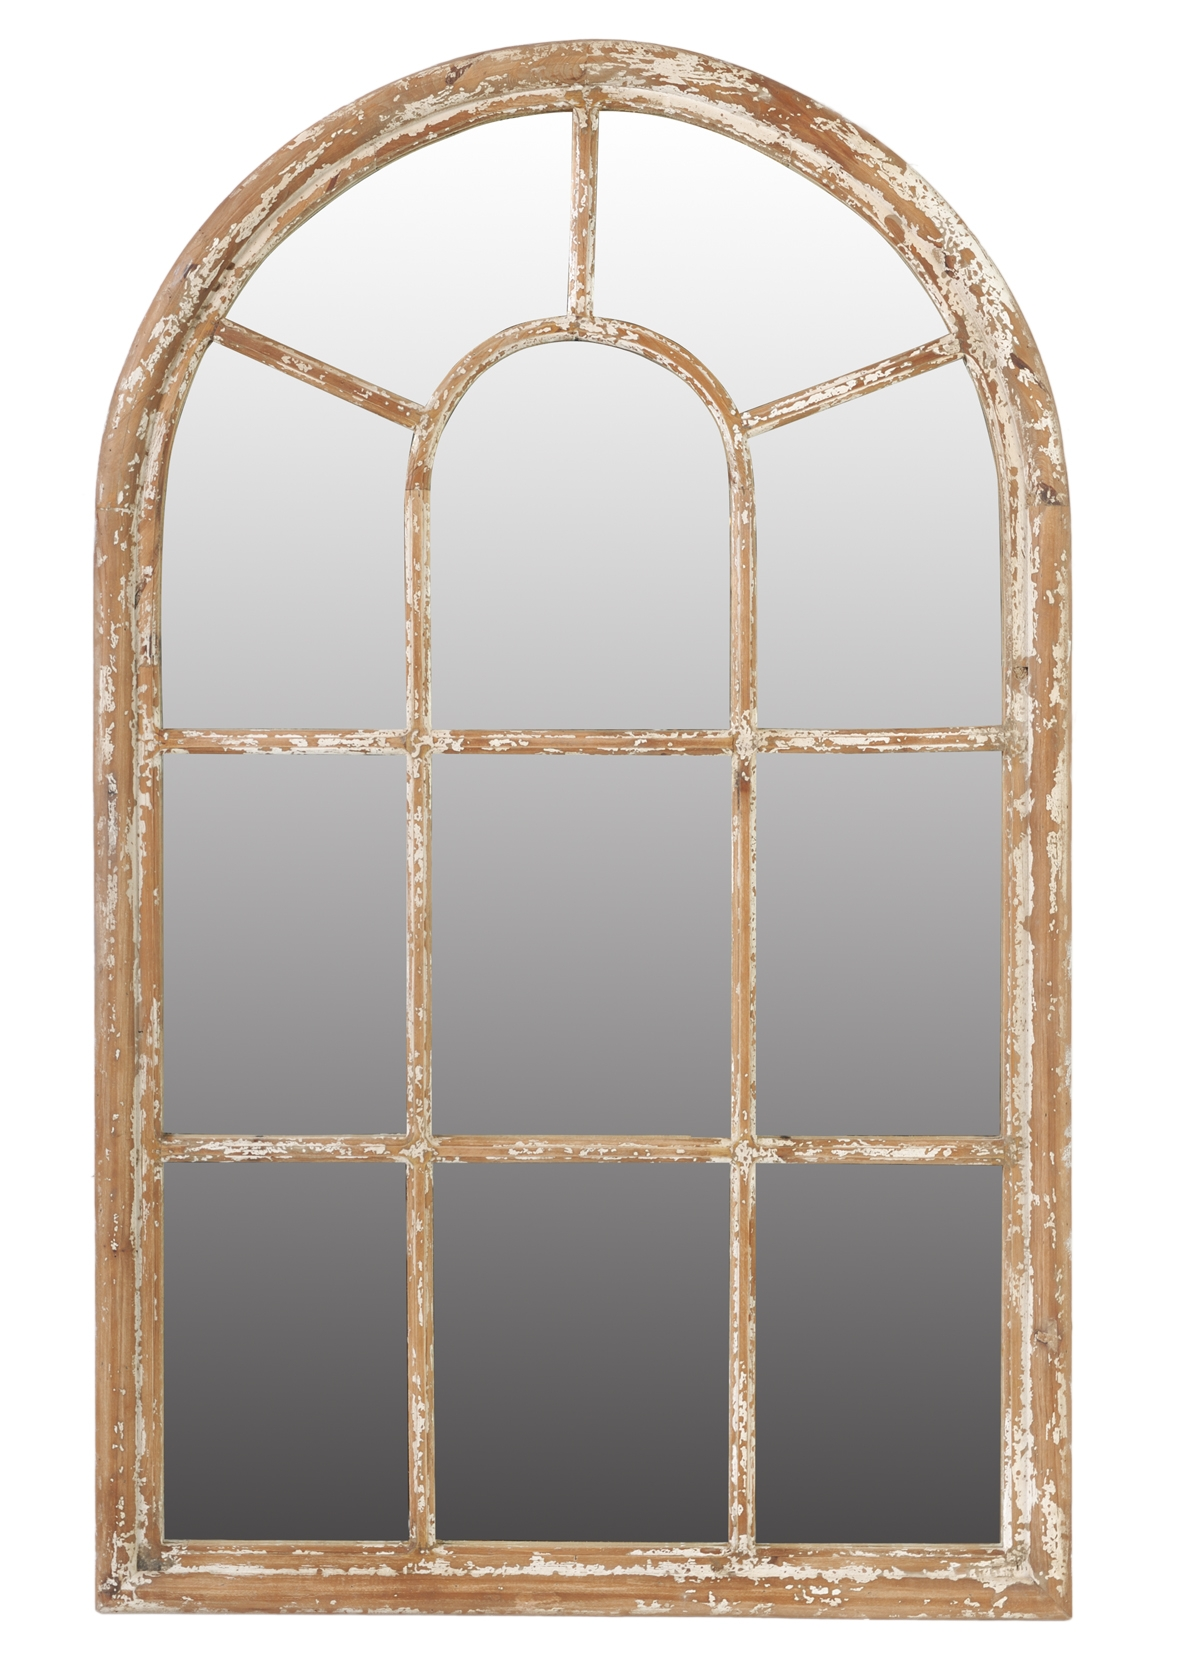 Arch window mirror wall home decor from for Window arch wall decor